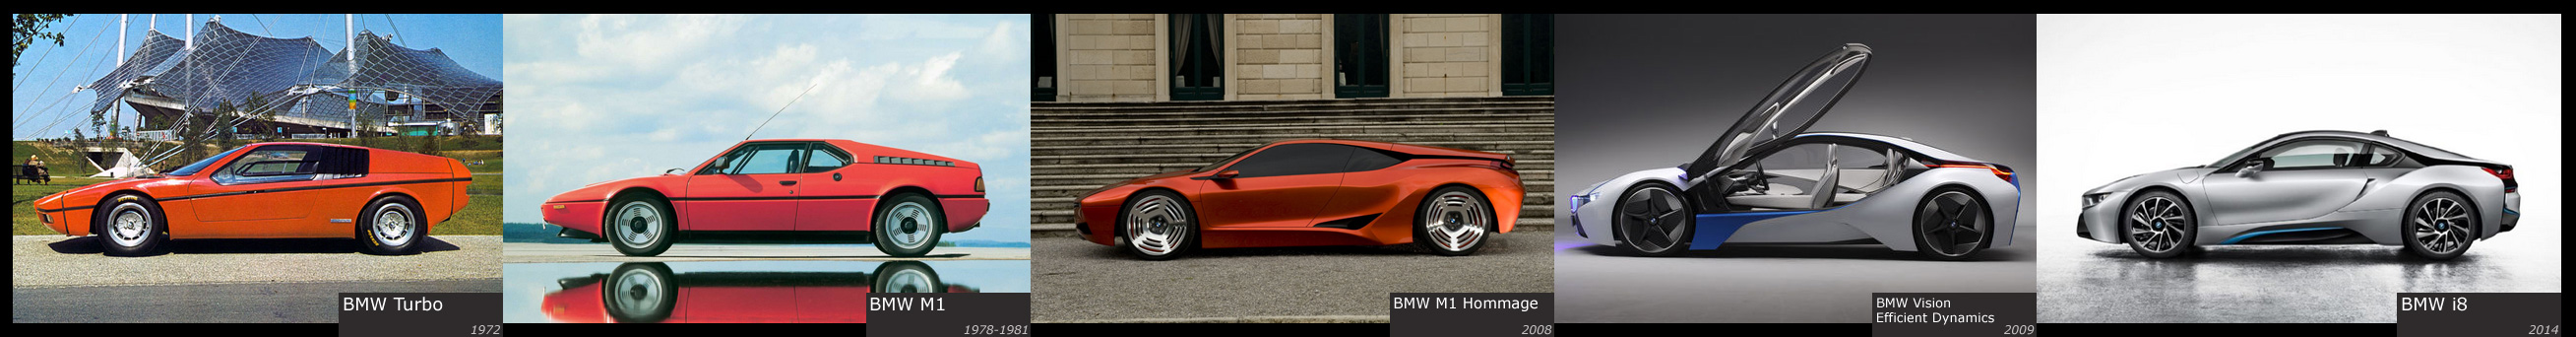 Genealogical branch of BMW sports cars